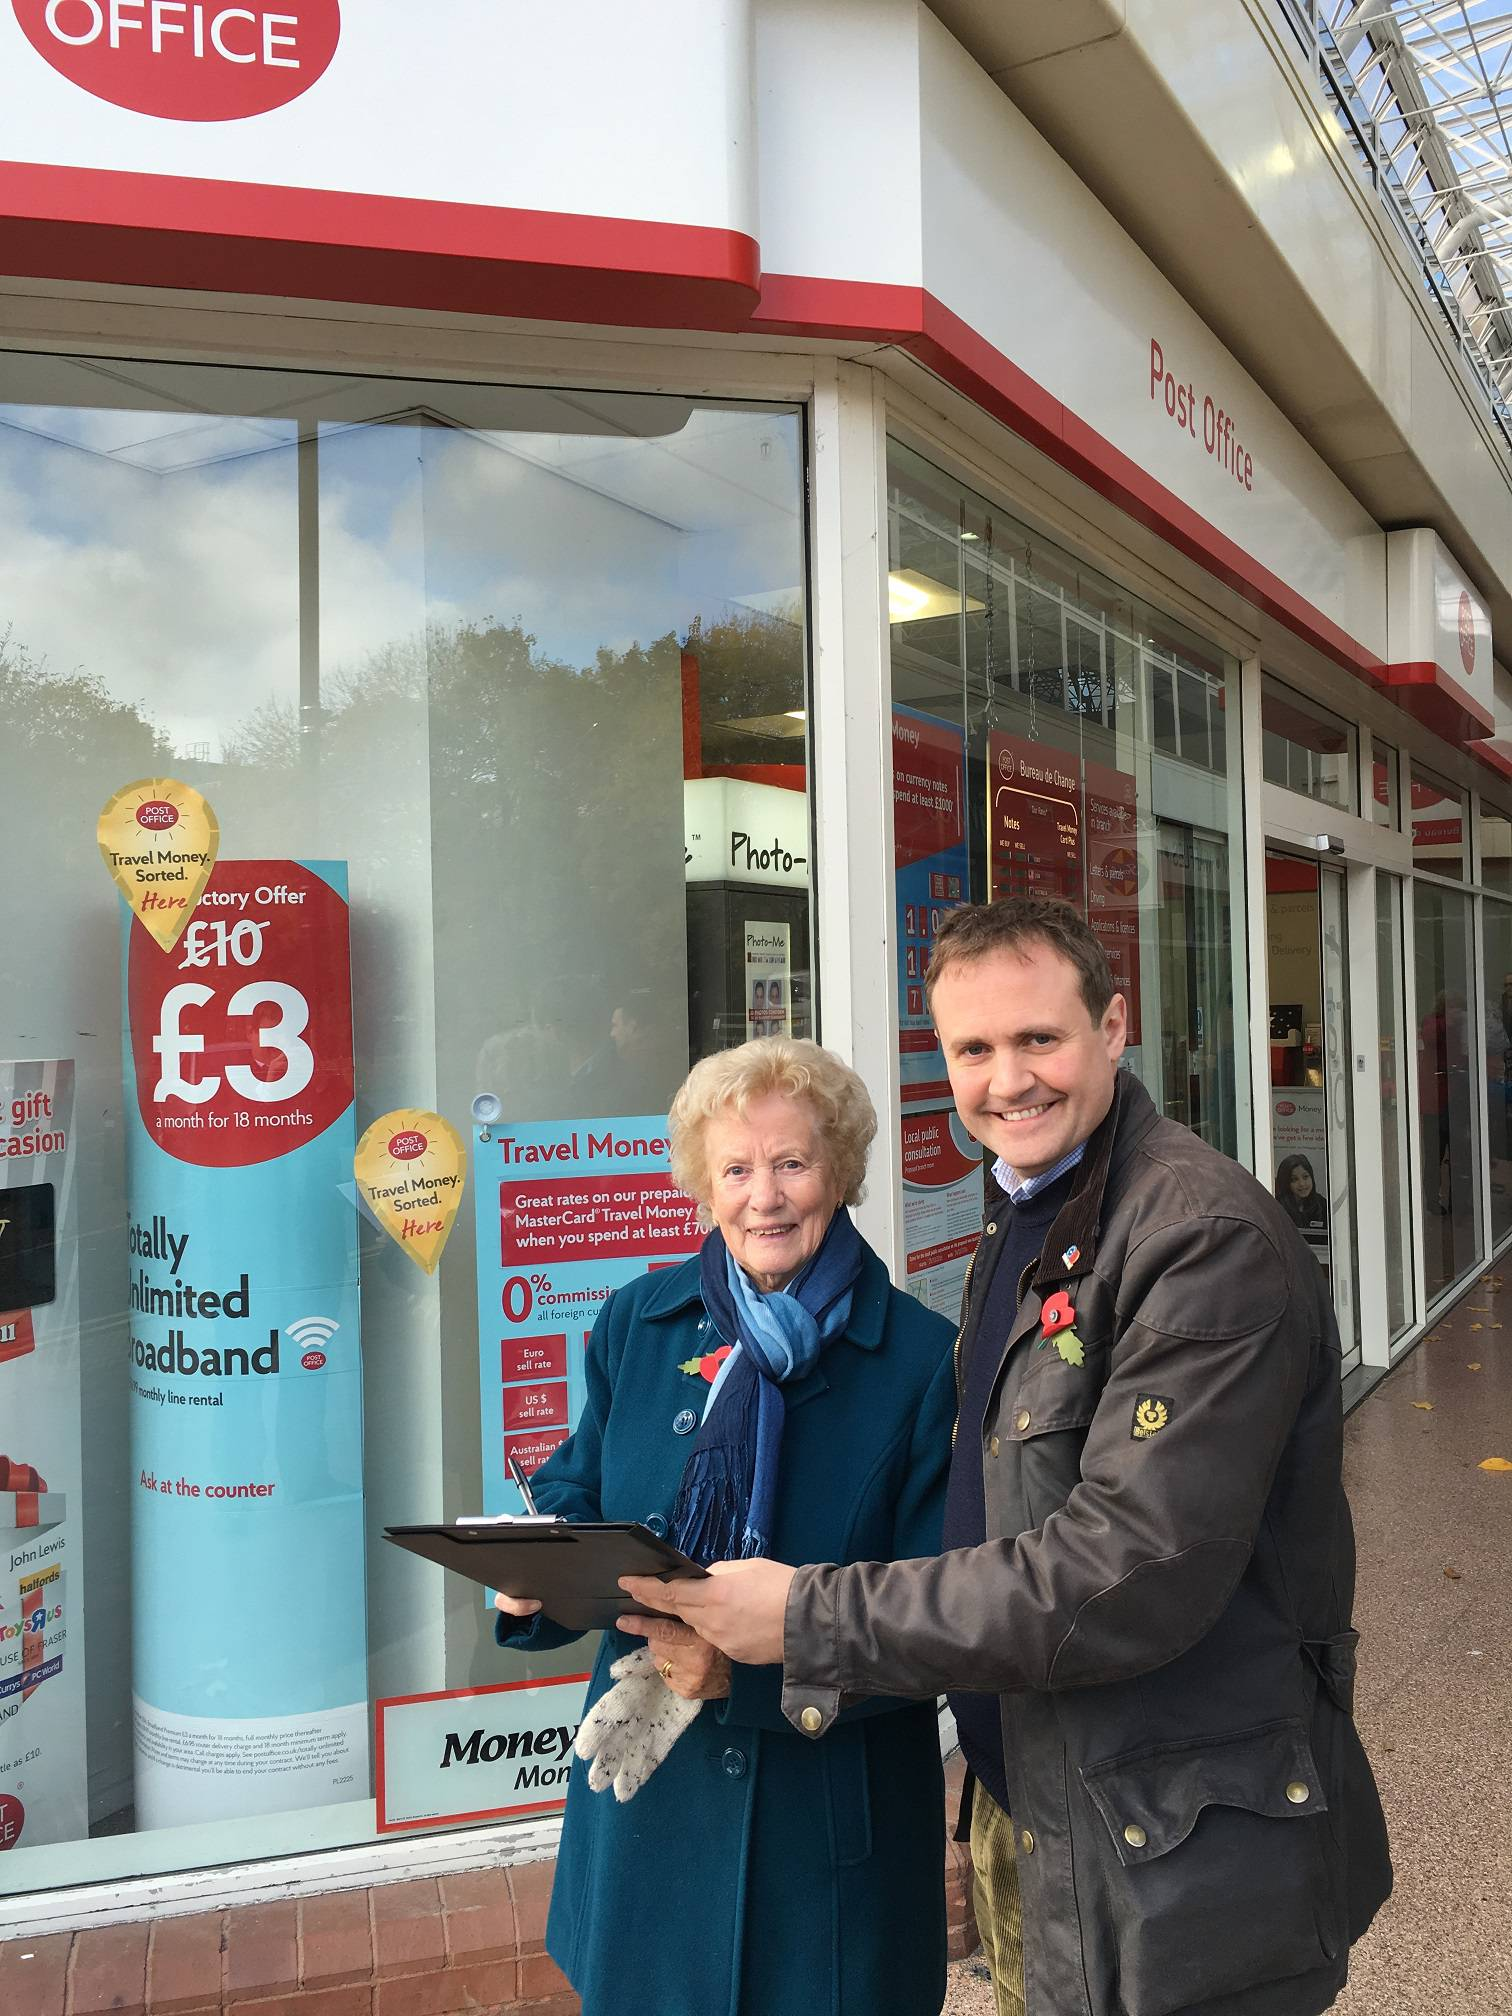 Tom Tugendhat MP with Mrs Lewis who signed the petition